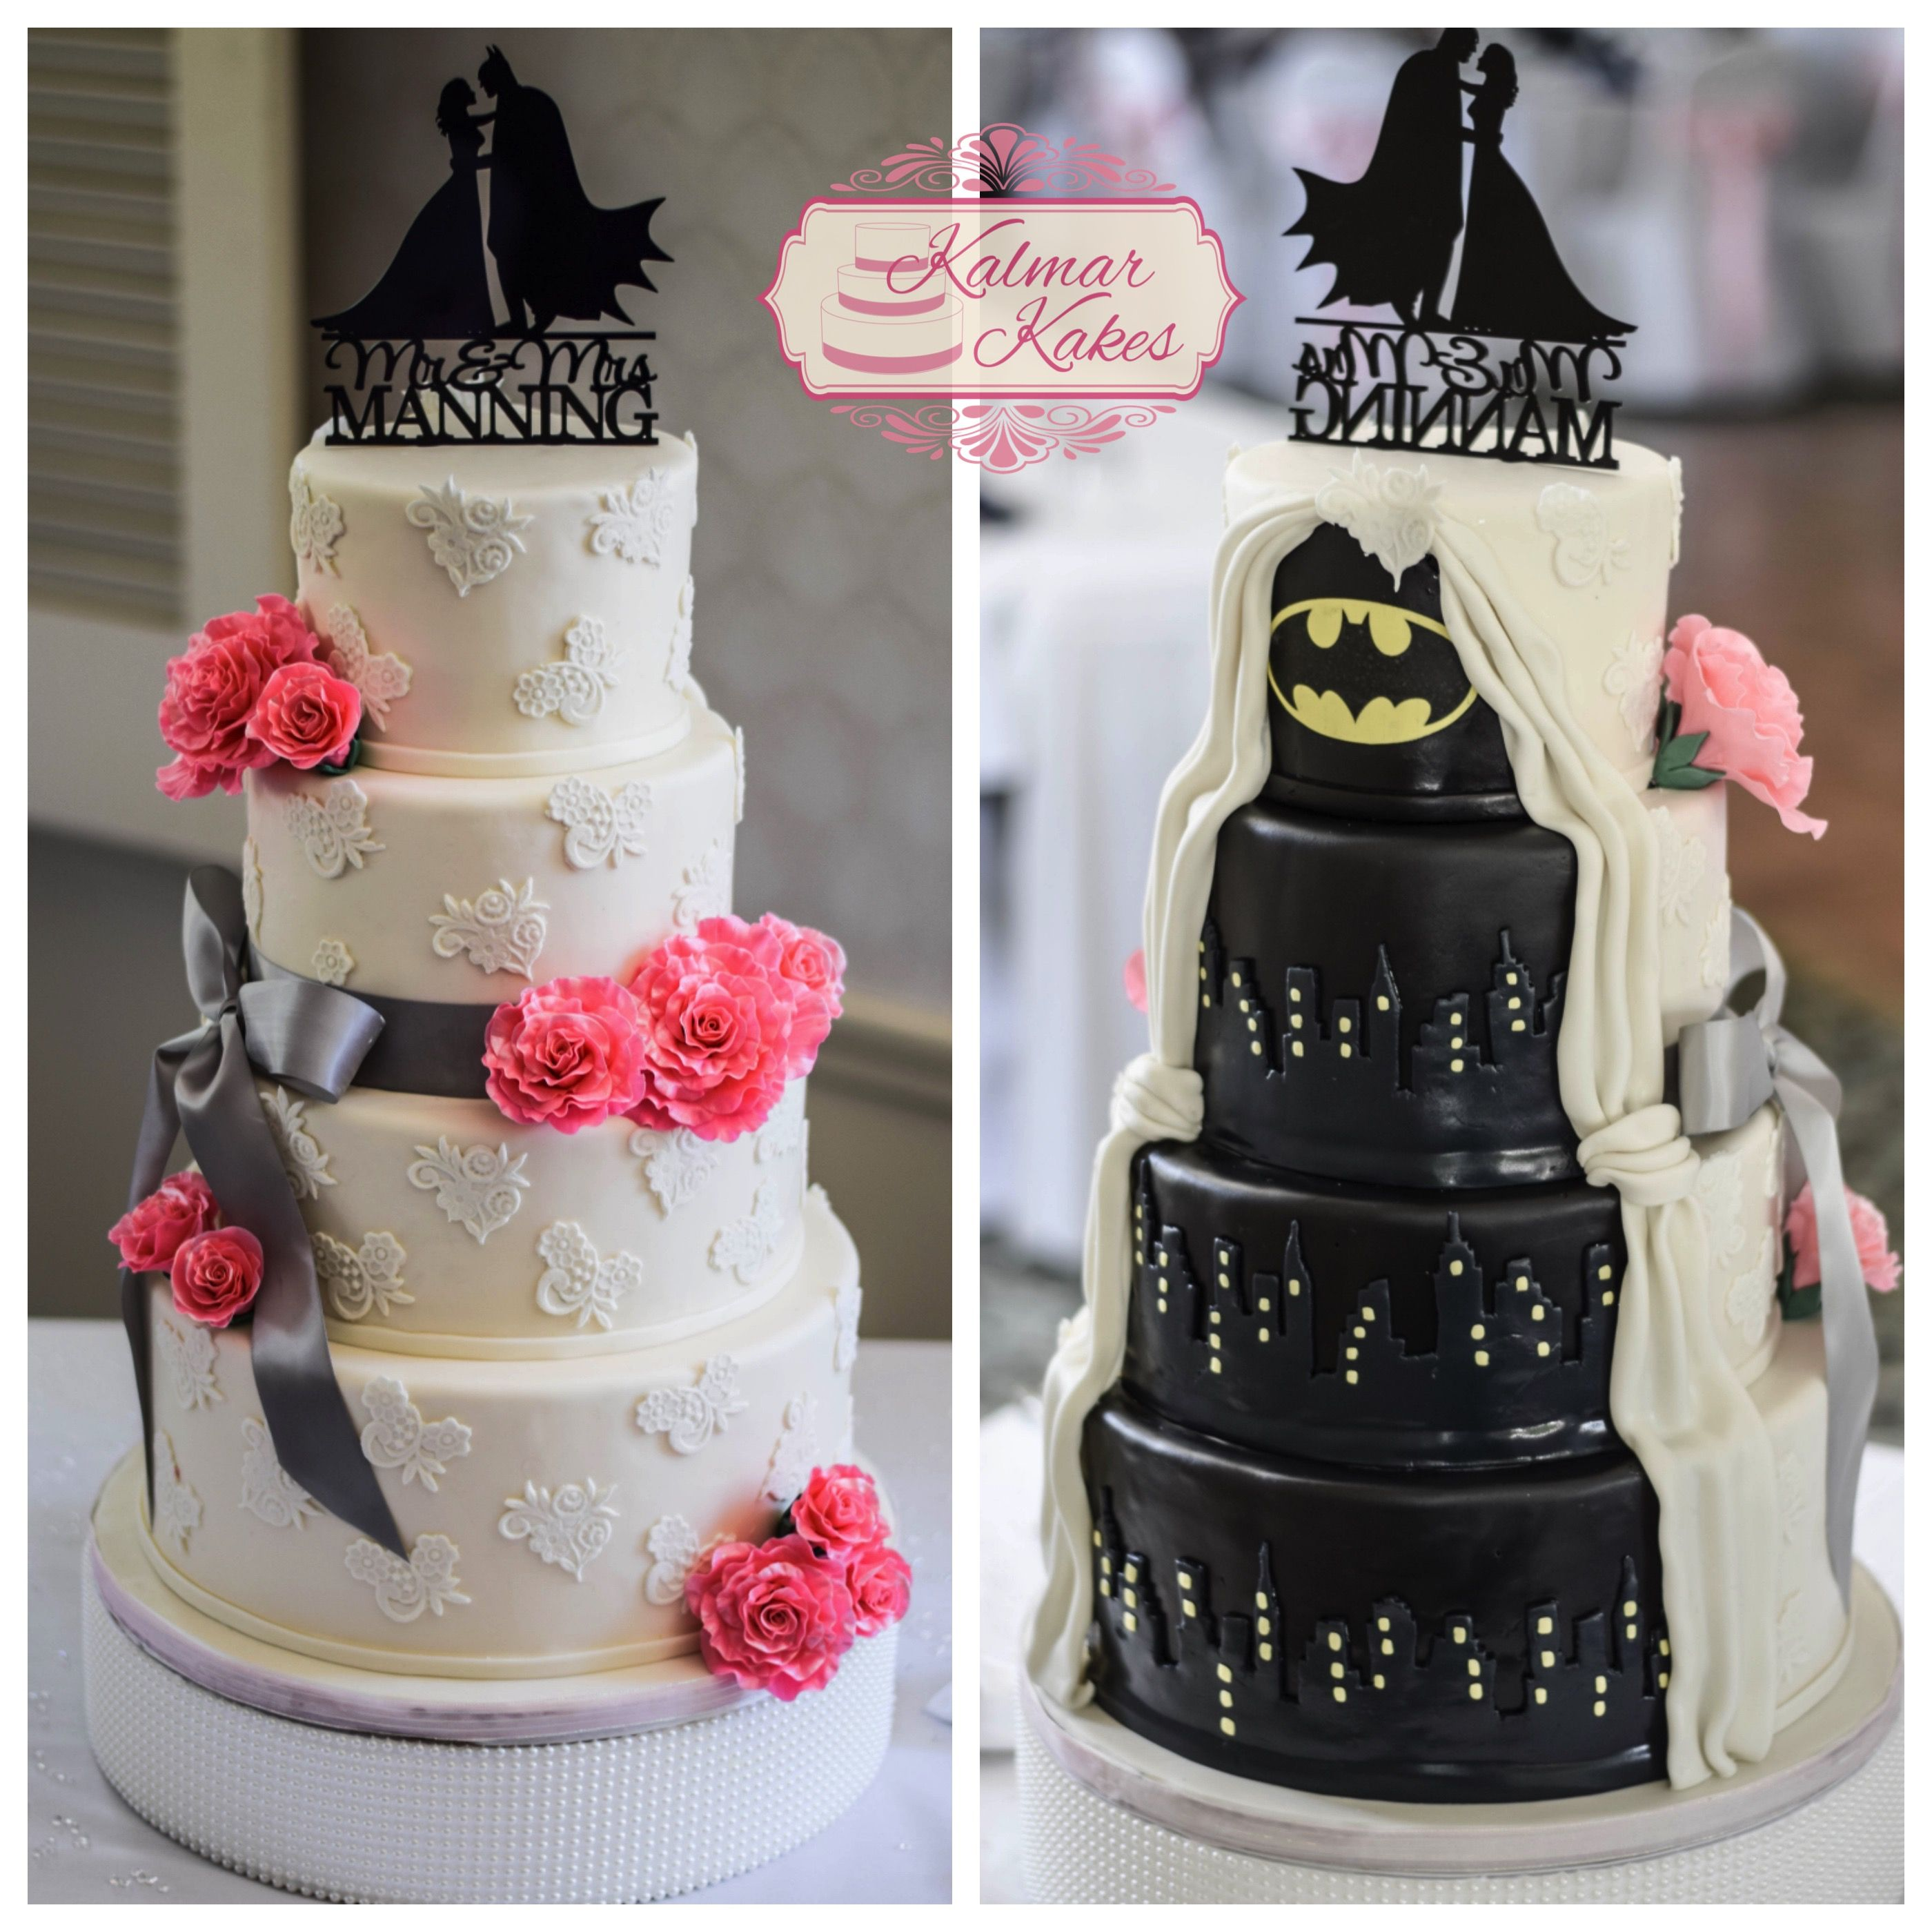 Surprise Batman Wedding cake for the groom   batman  weddingcake     Surprise Batman Wedding cake for the groom   batman  weddingcake  cakes